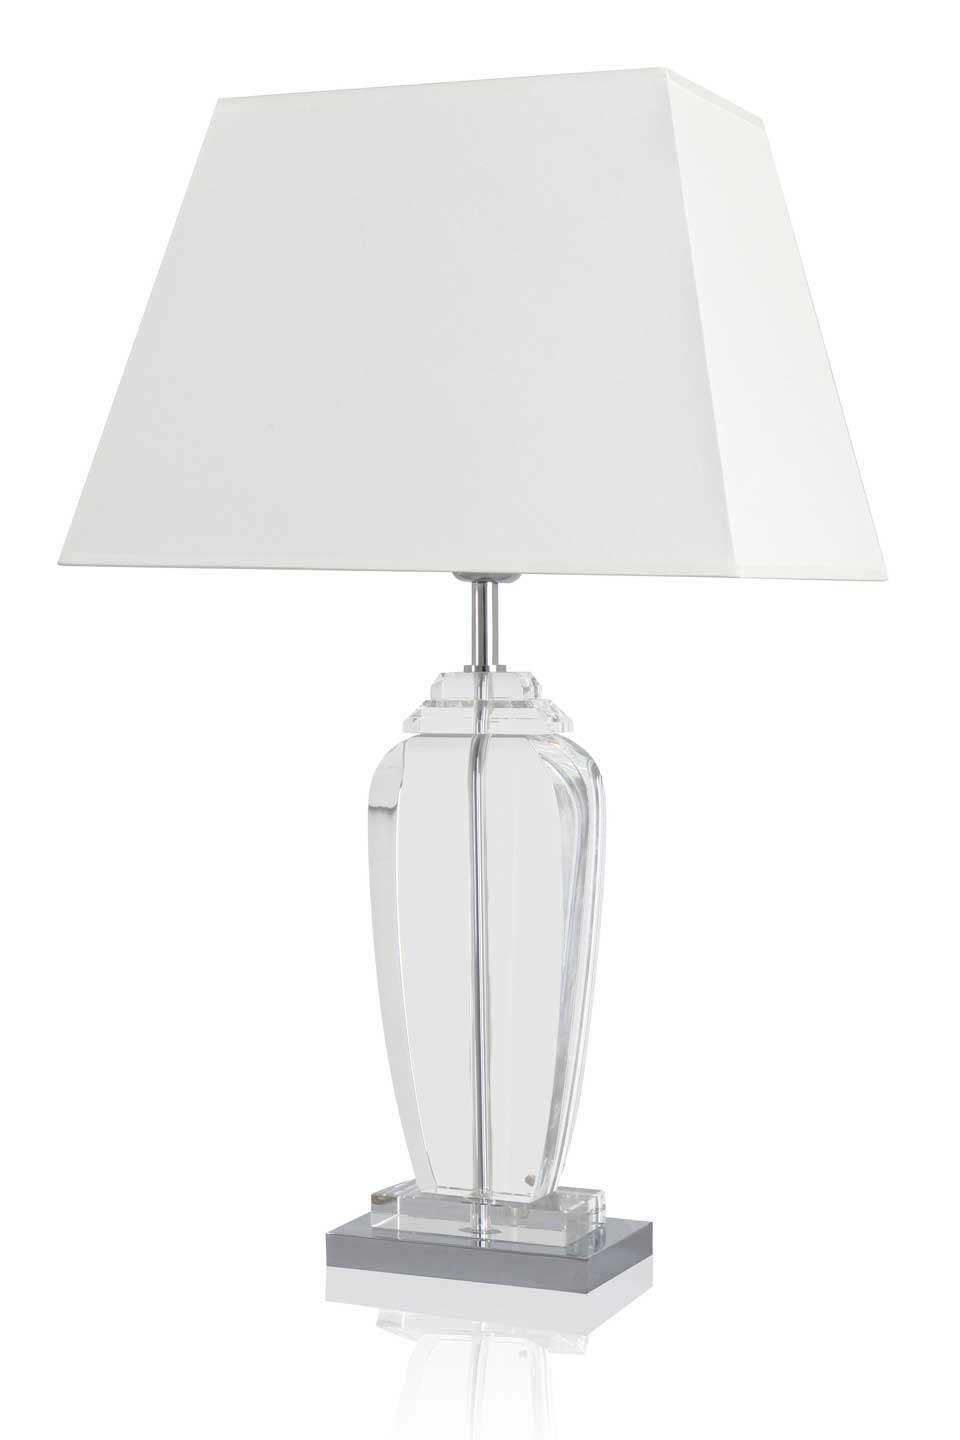 Chrome and optical glaas table lamp Bacaria with square base large size. Le Dauphin.